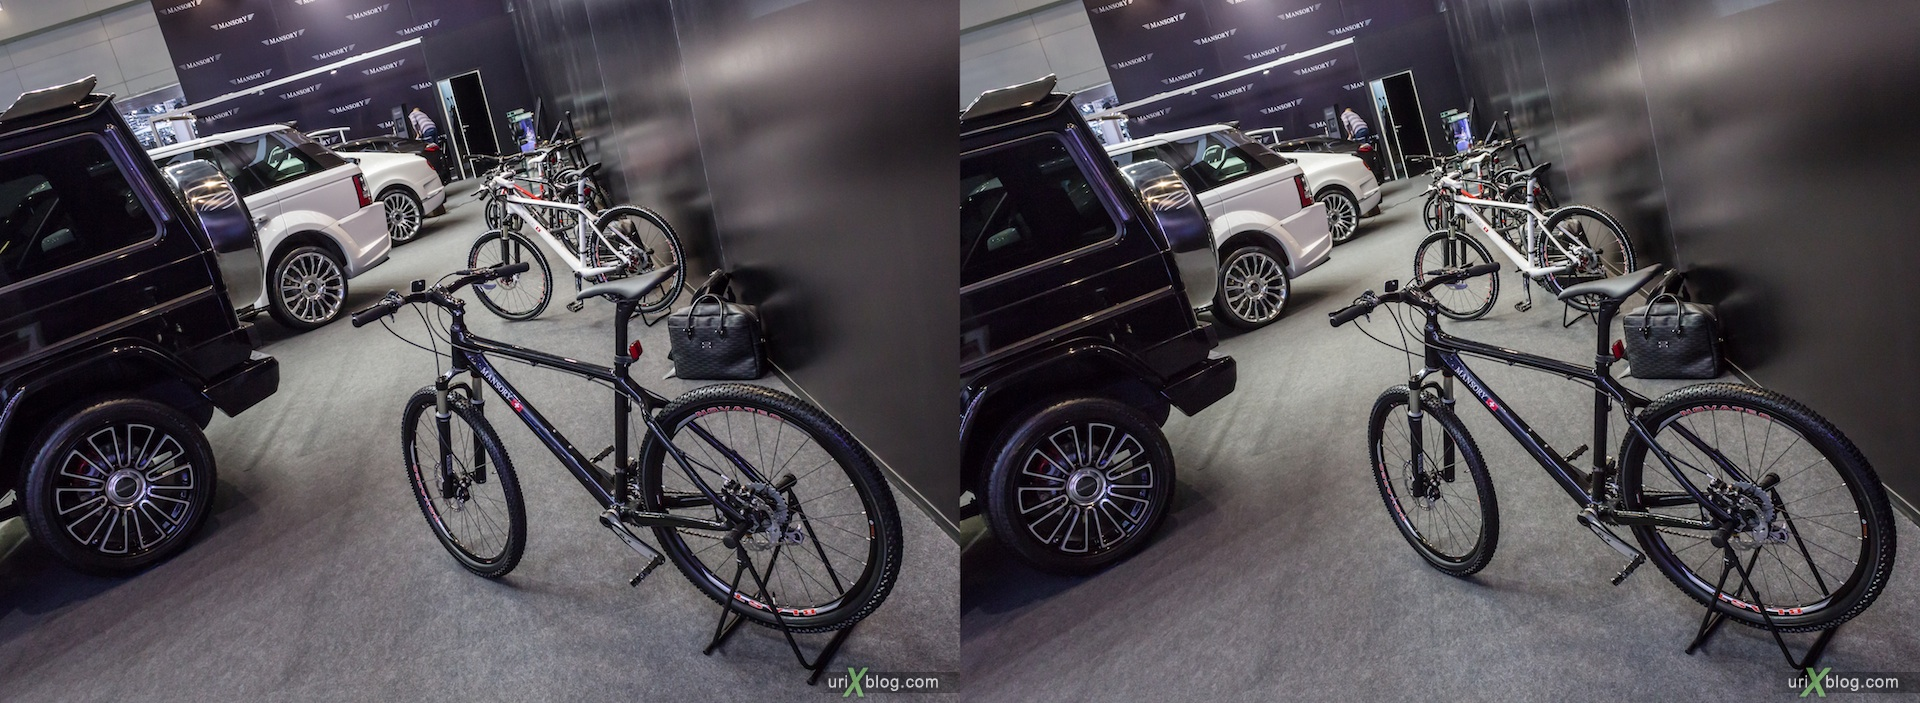 2012, Mansory, bicycle, велосипед, Moscow International Automobile Salon, auto show, 3D, stereo pair, cross-eyed, crossview